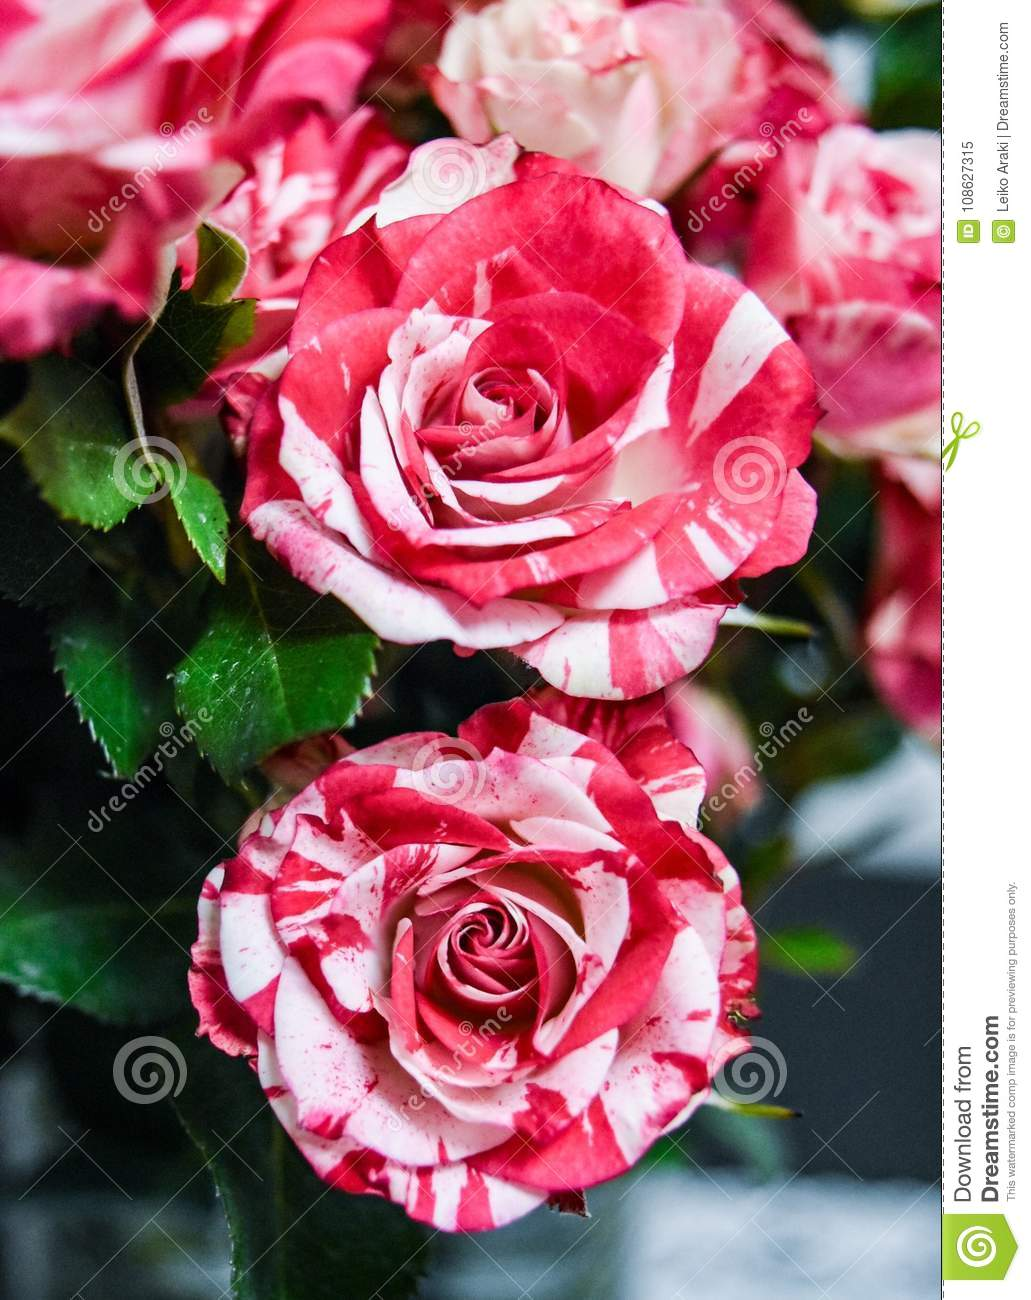 Amazing 2 Flowers Rose Small Red Anda White Stock Image Image Of